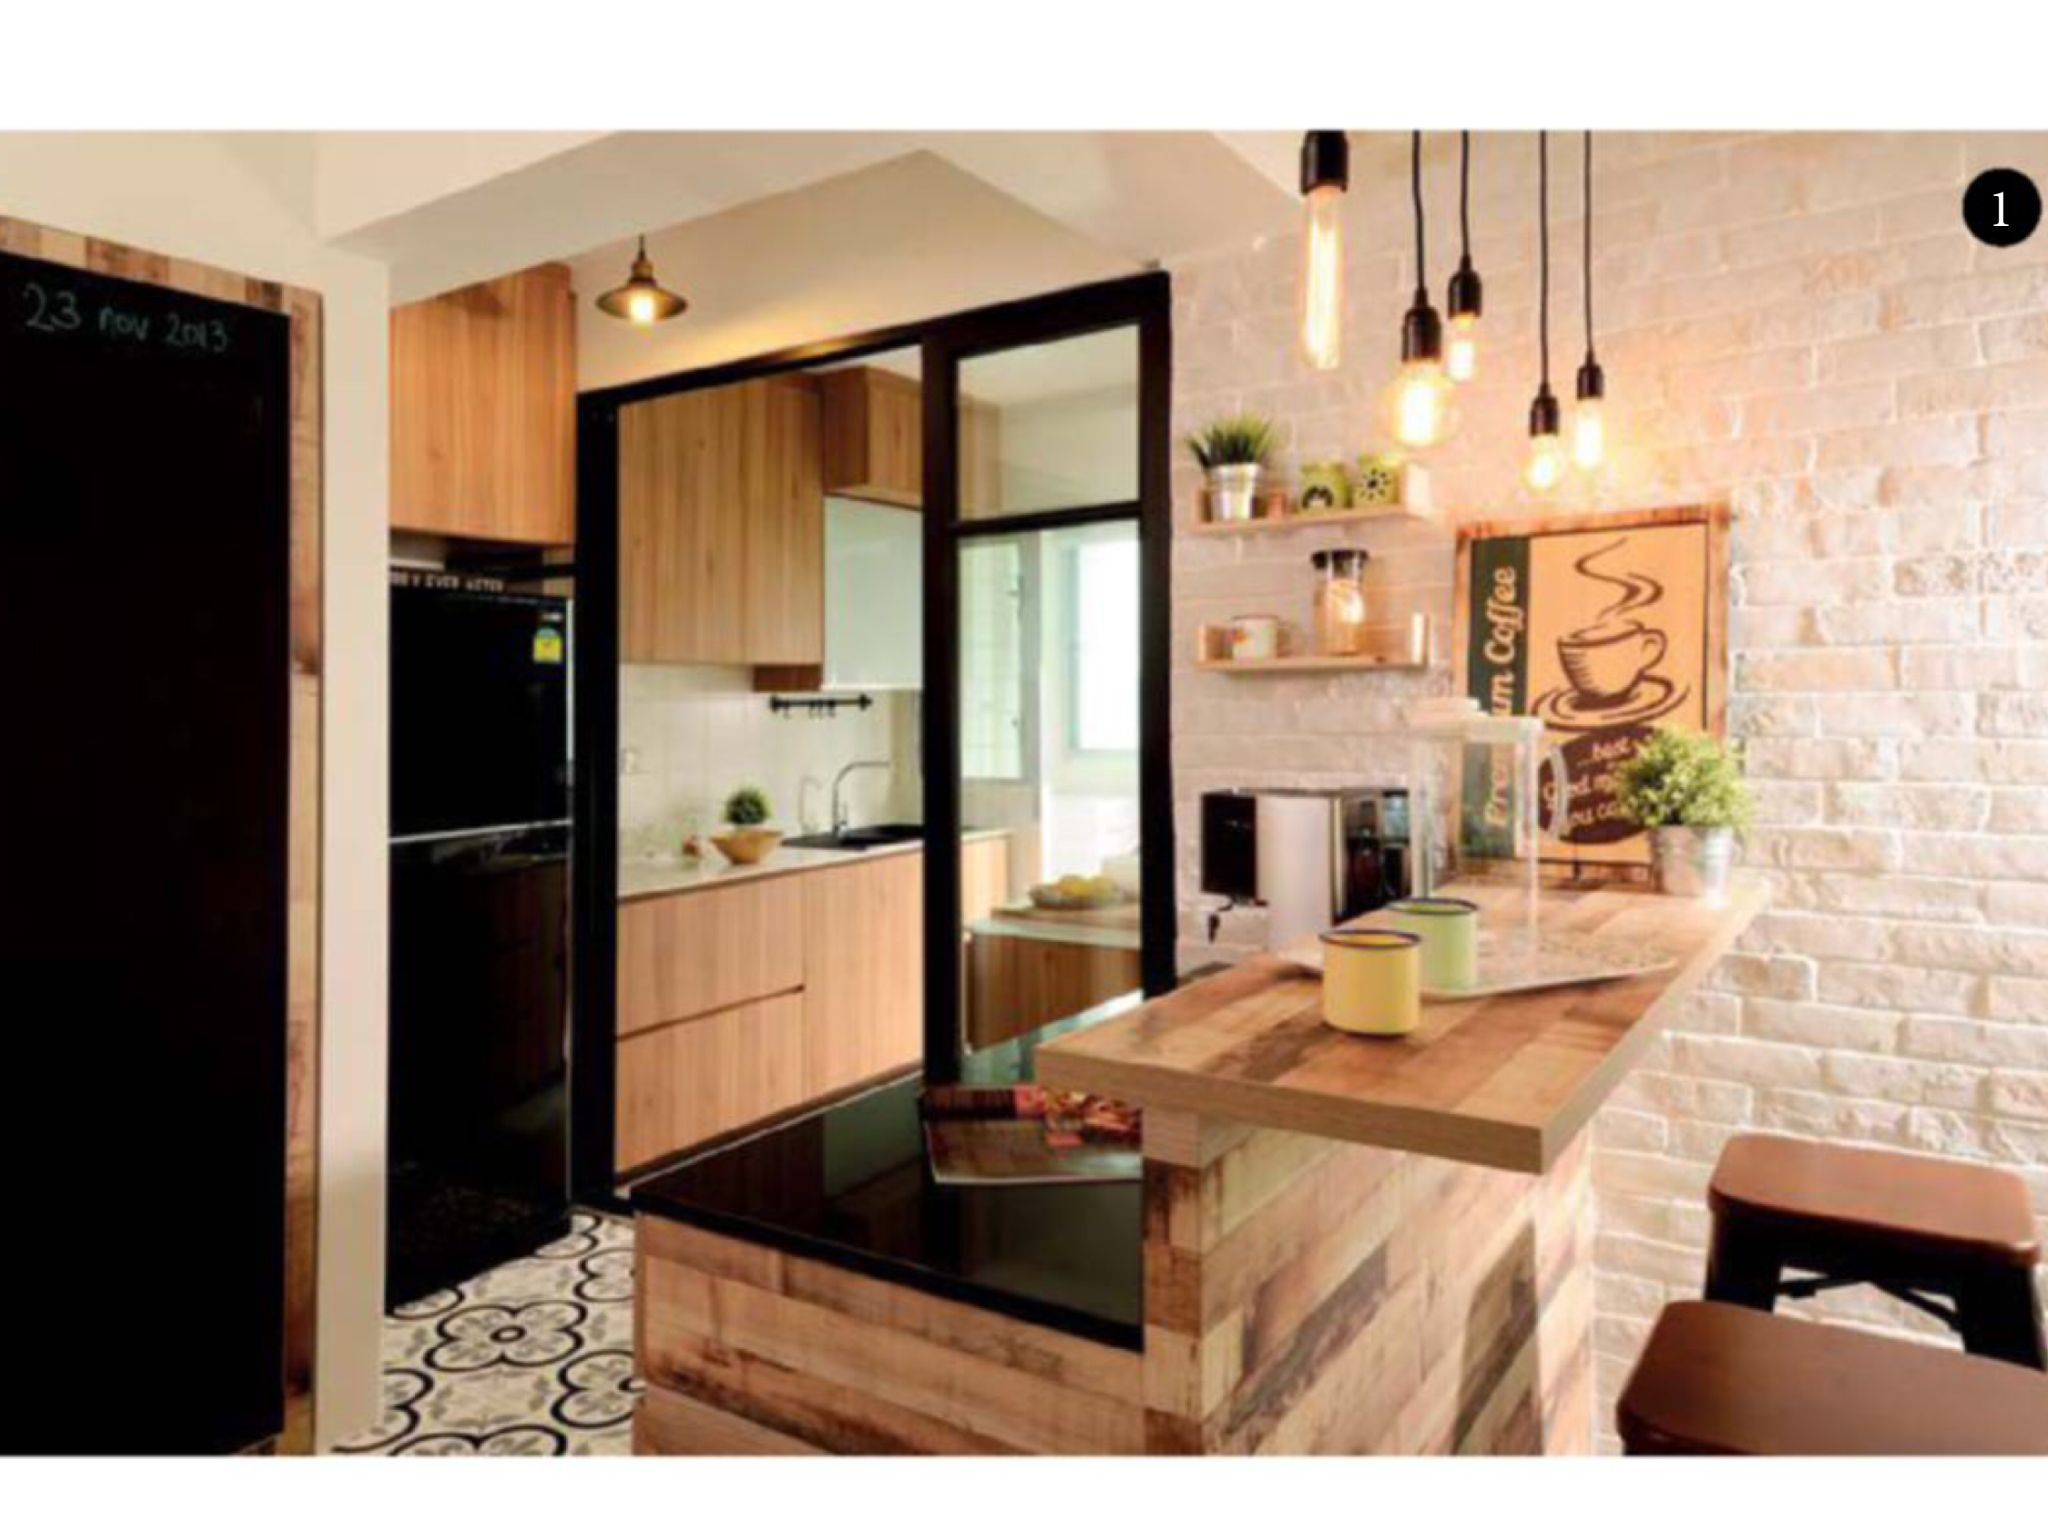 Open concept kitchen concept kitchens and breakfast bars for Dry kitchen ideas